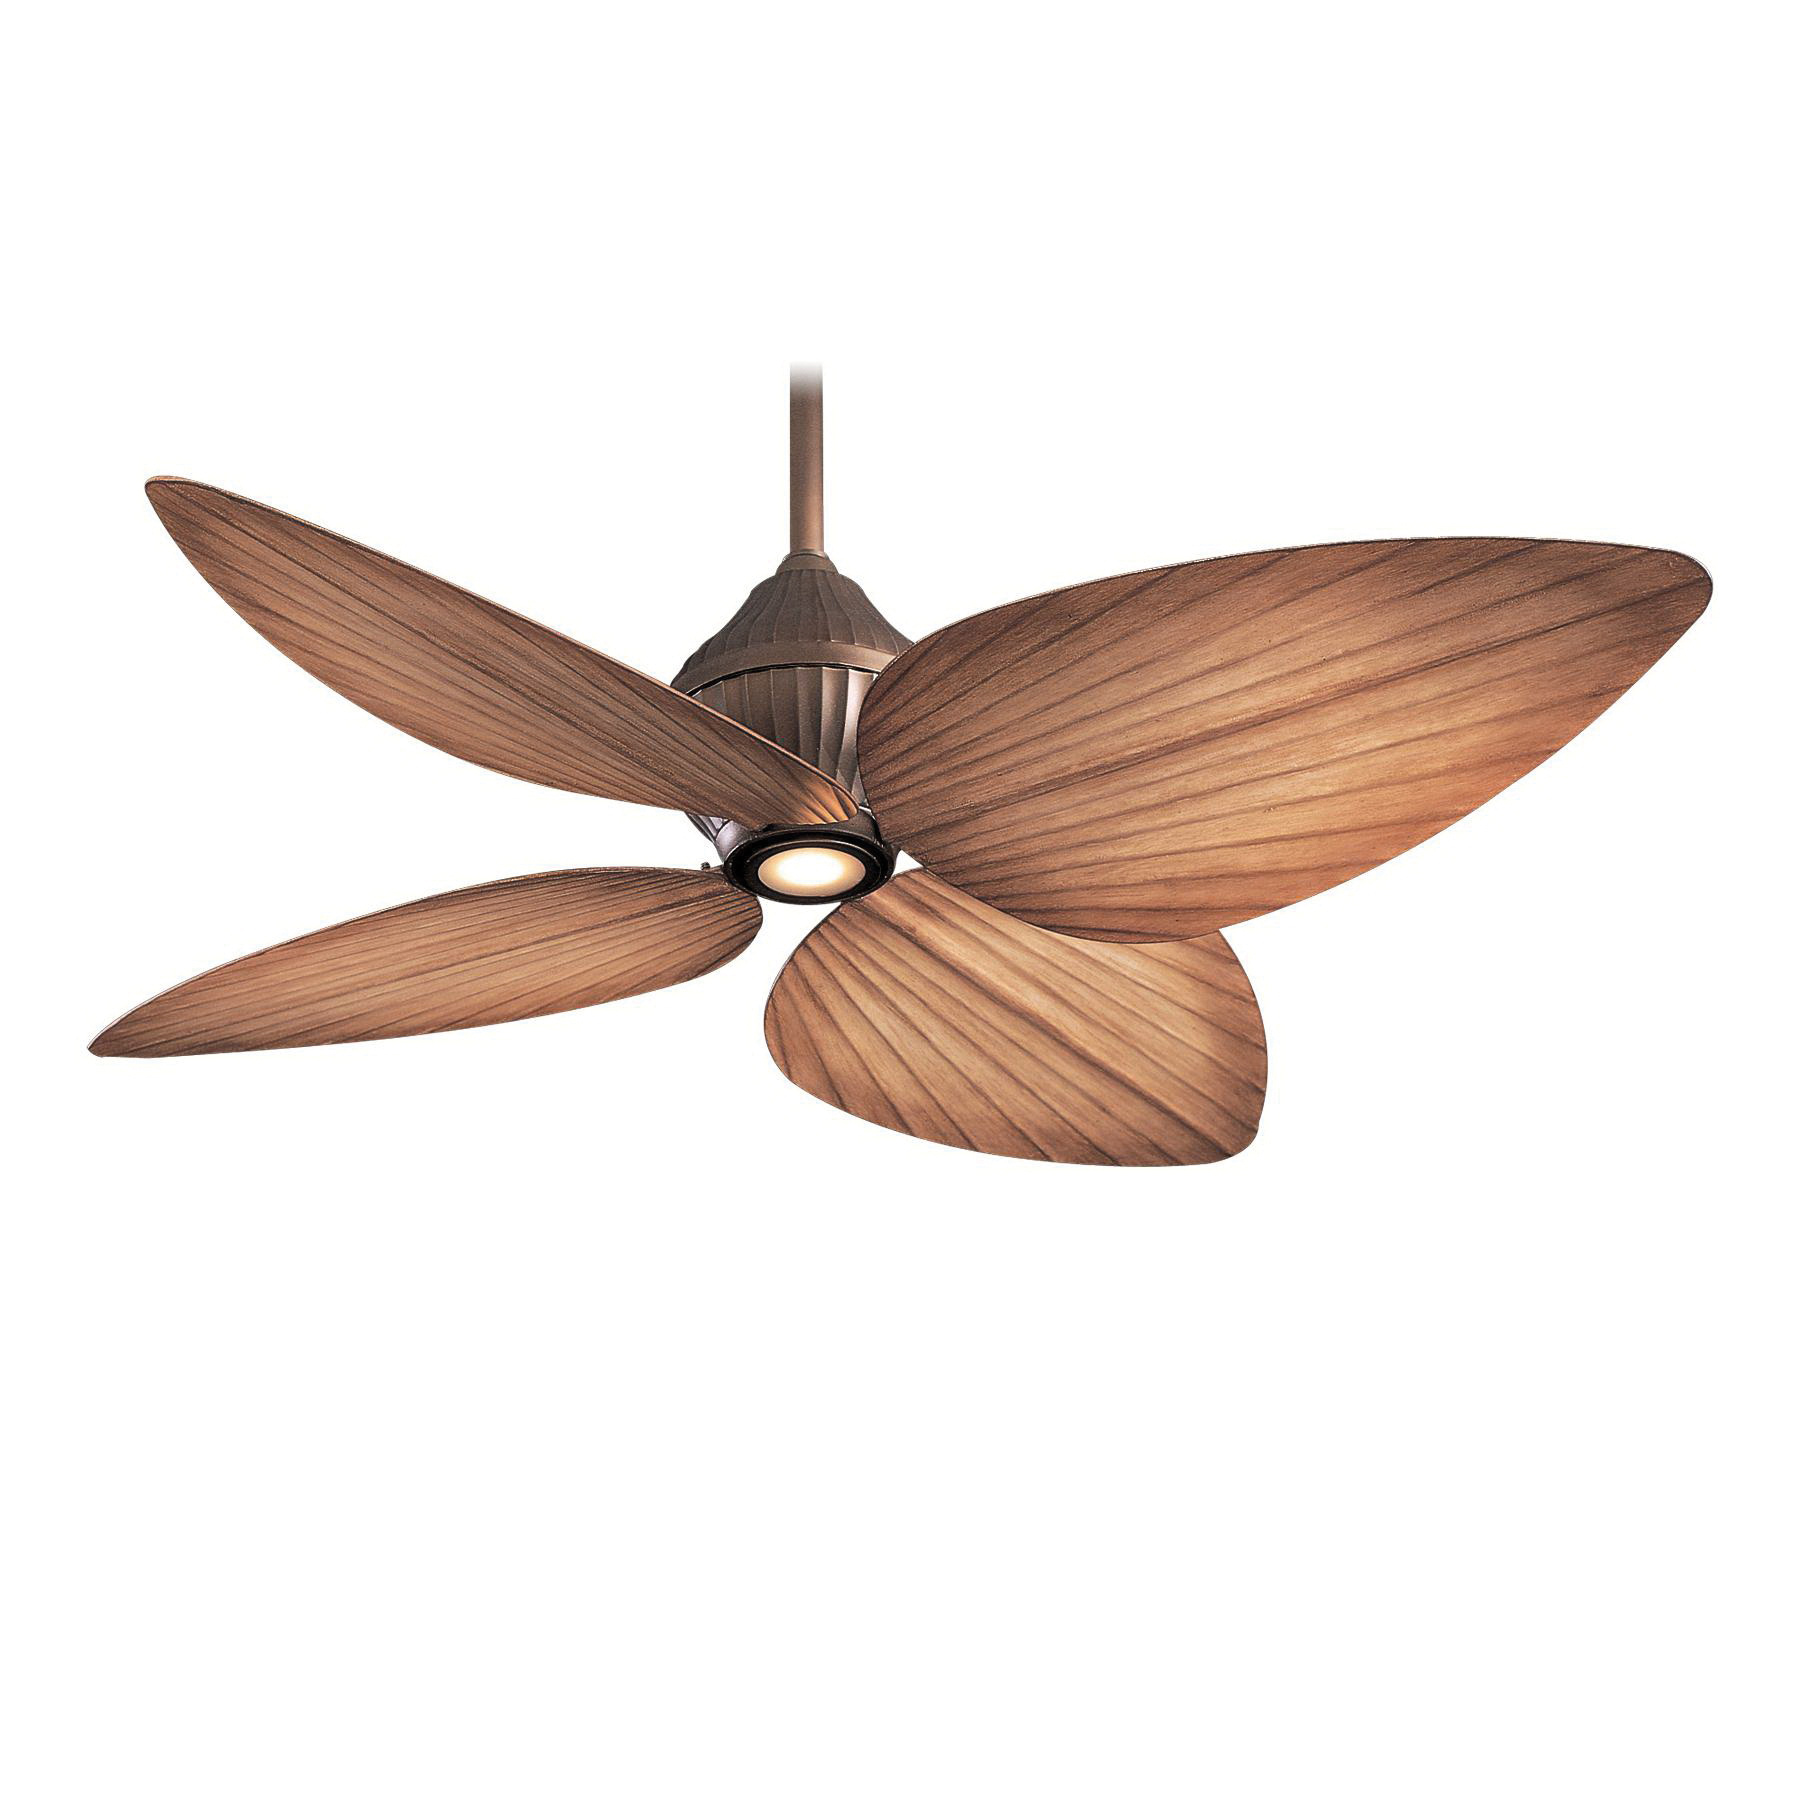 Minka-Aire F581-ORB Transitional Ceiling Fan With Light 52 Inch 4 Blade 3 Speed Oil Rubbed Bronze Gauguin™